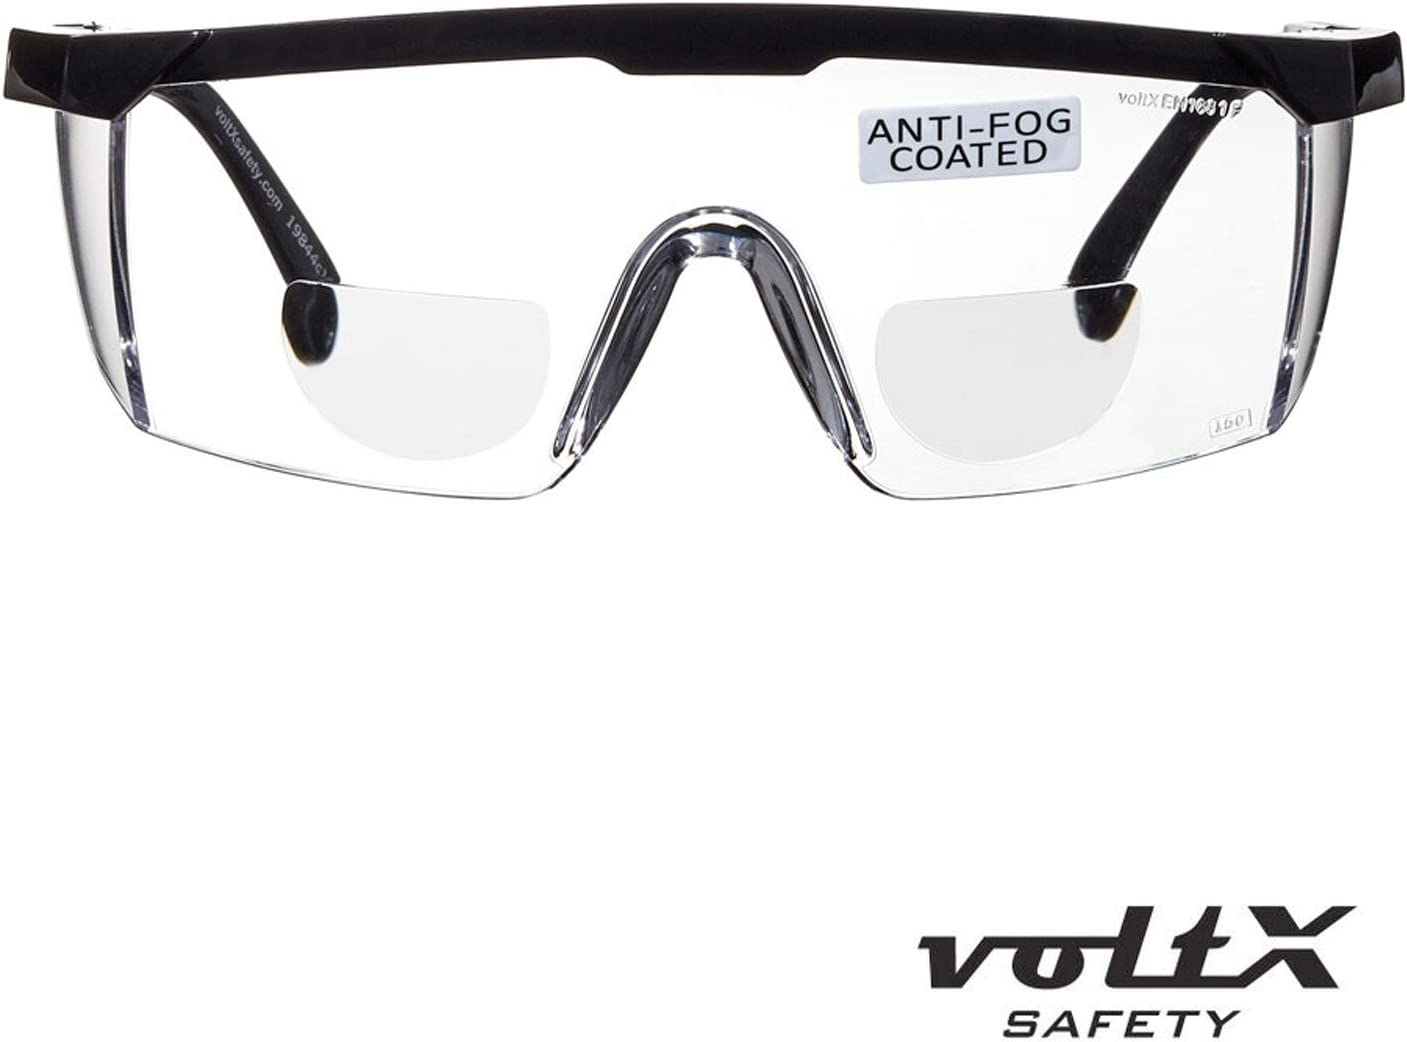 Clear, 1.5 Dioptre with Case CE EN166f Certified UV400 Anti Fog Coated Lens Includes Safety Cord with headstop voltX Classic Bifocal Safety Glasses